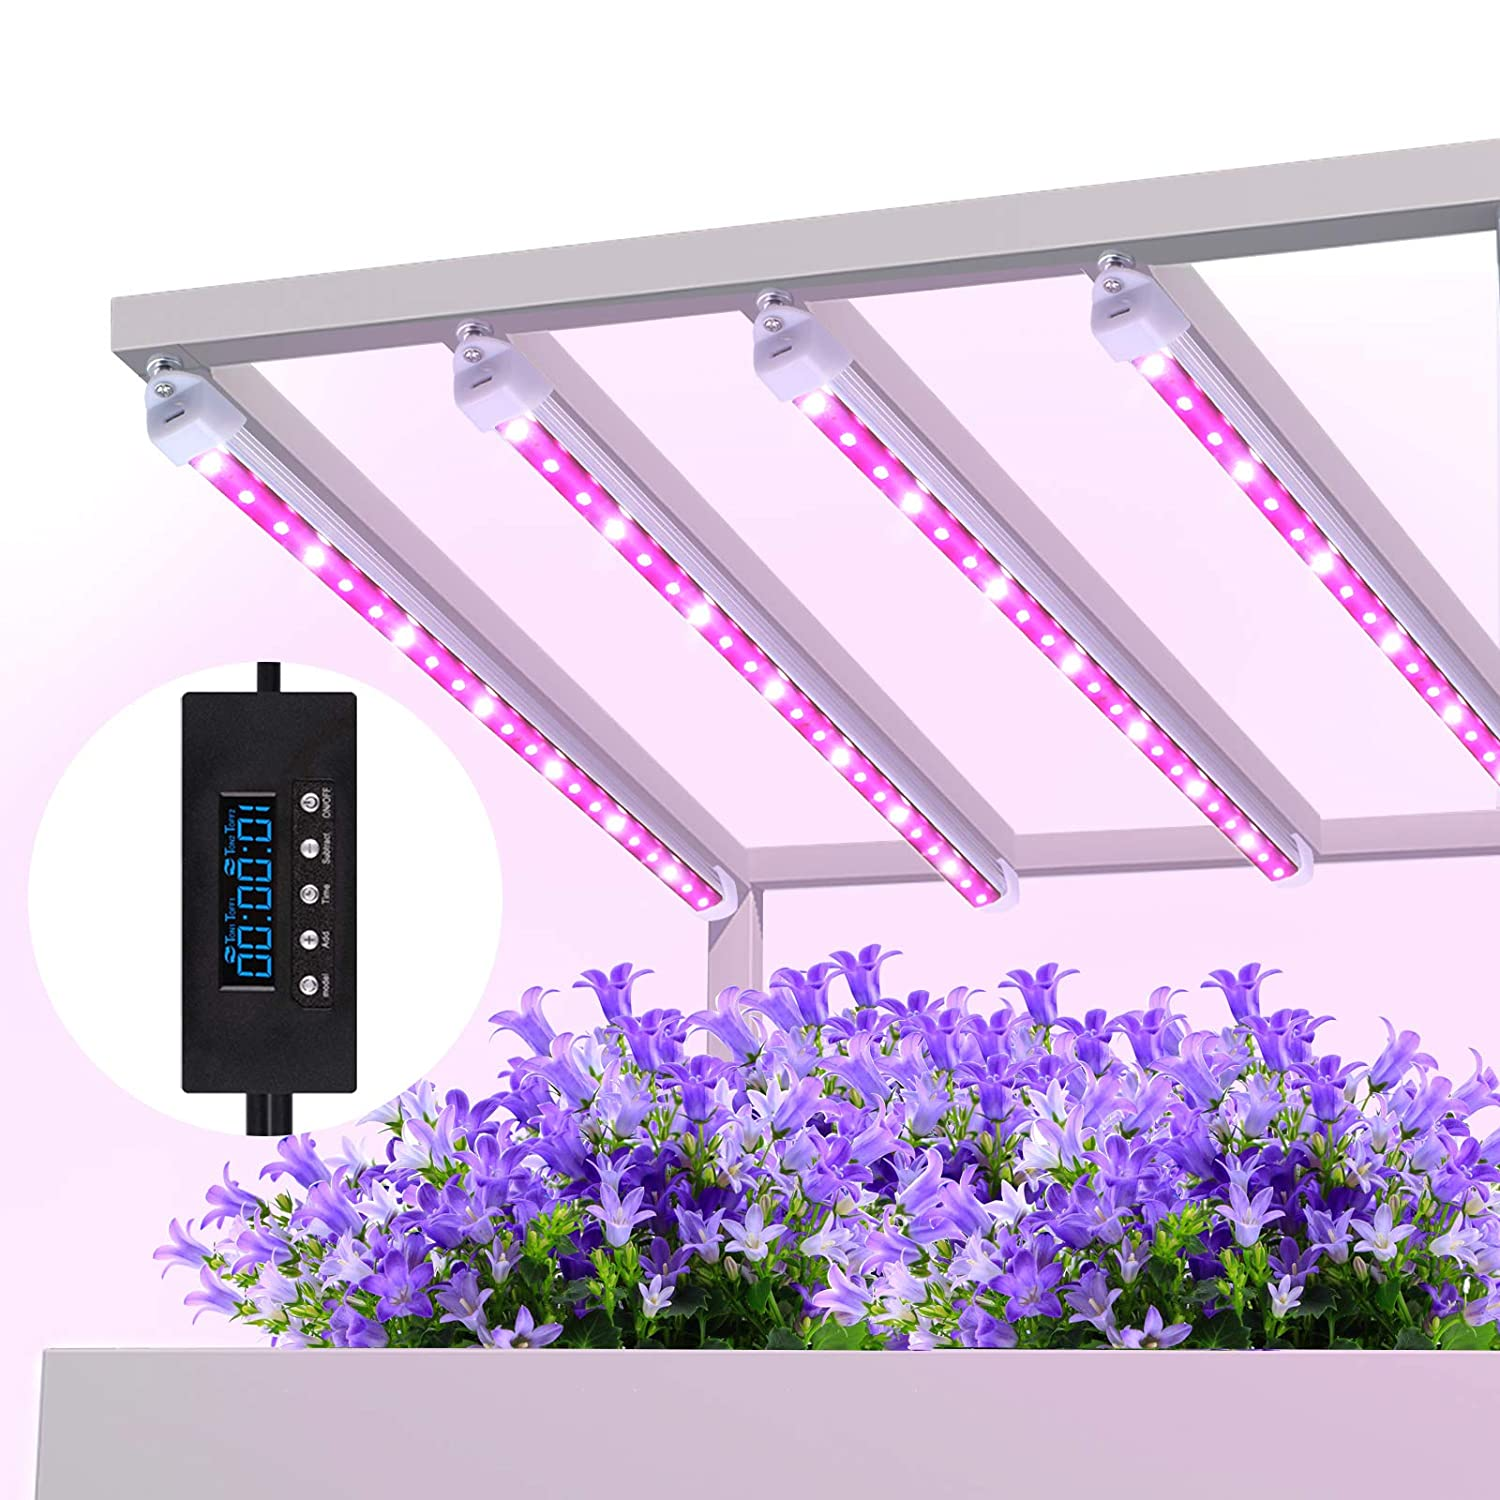 Grow lights 42W LED Plant Light Strips, MIXC 2019 Upgraded Version Growing Lamp with Timer 24 hours Cycling 5 Dimmable Levels Red Yellow Full Spectrum for Plants Succulent Seedling with Gifts 4-Pack